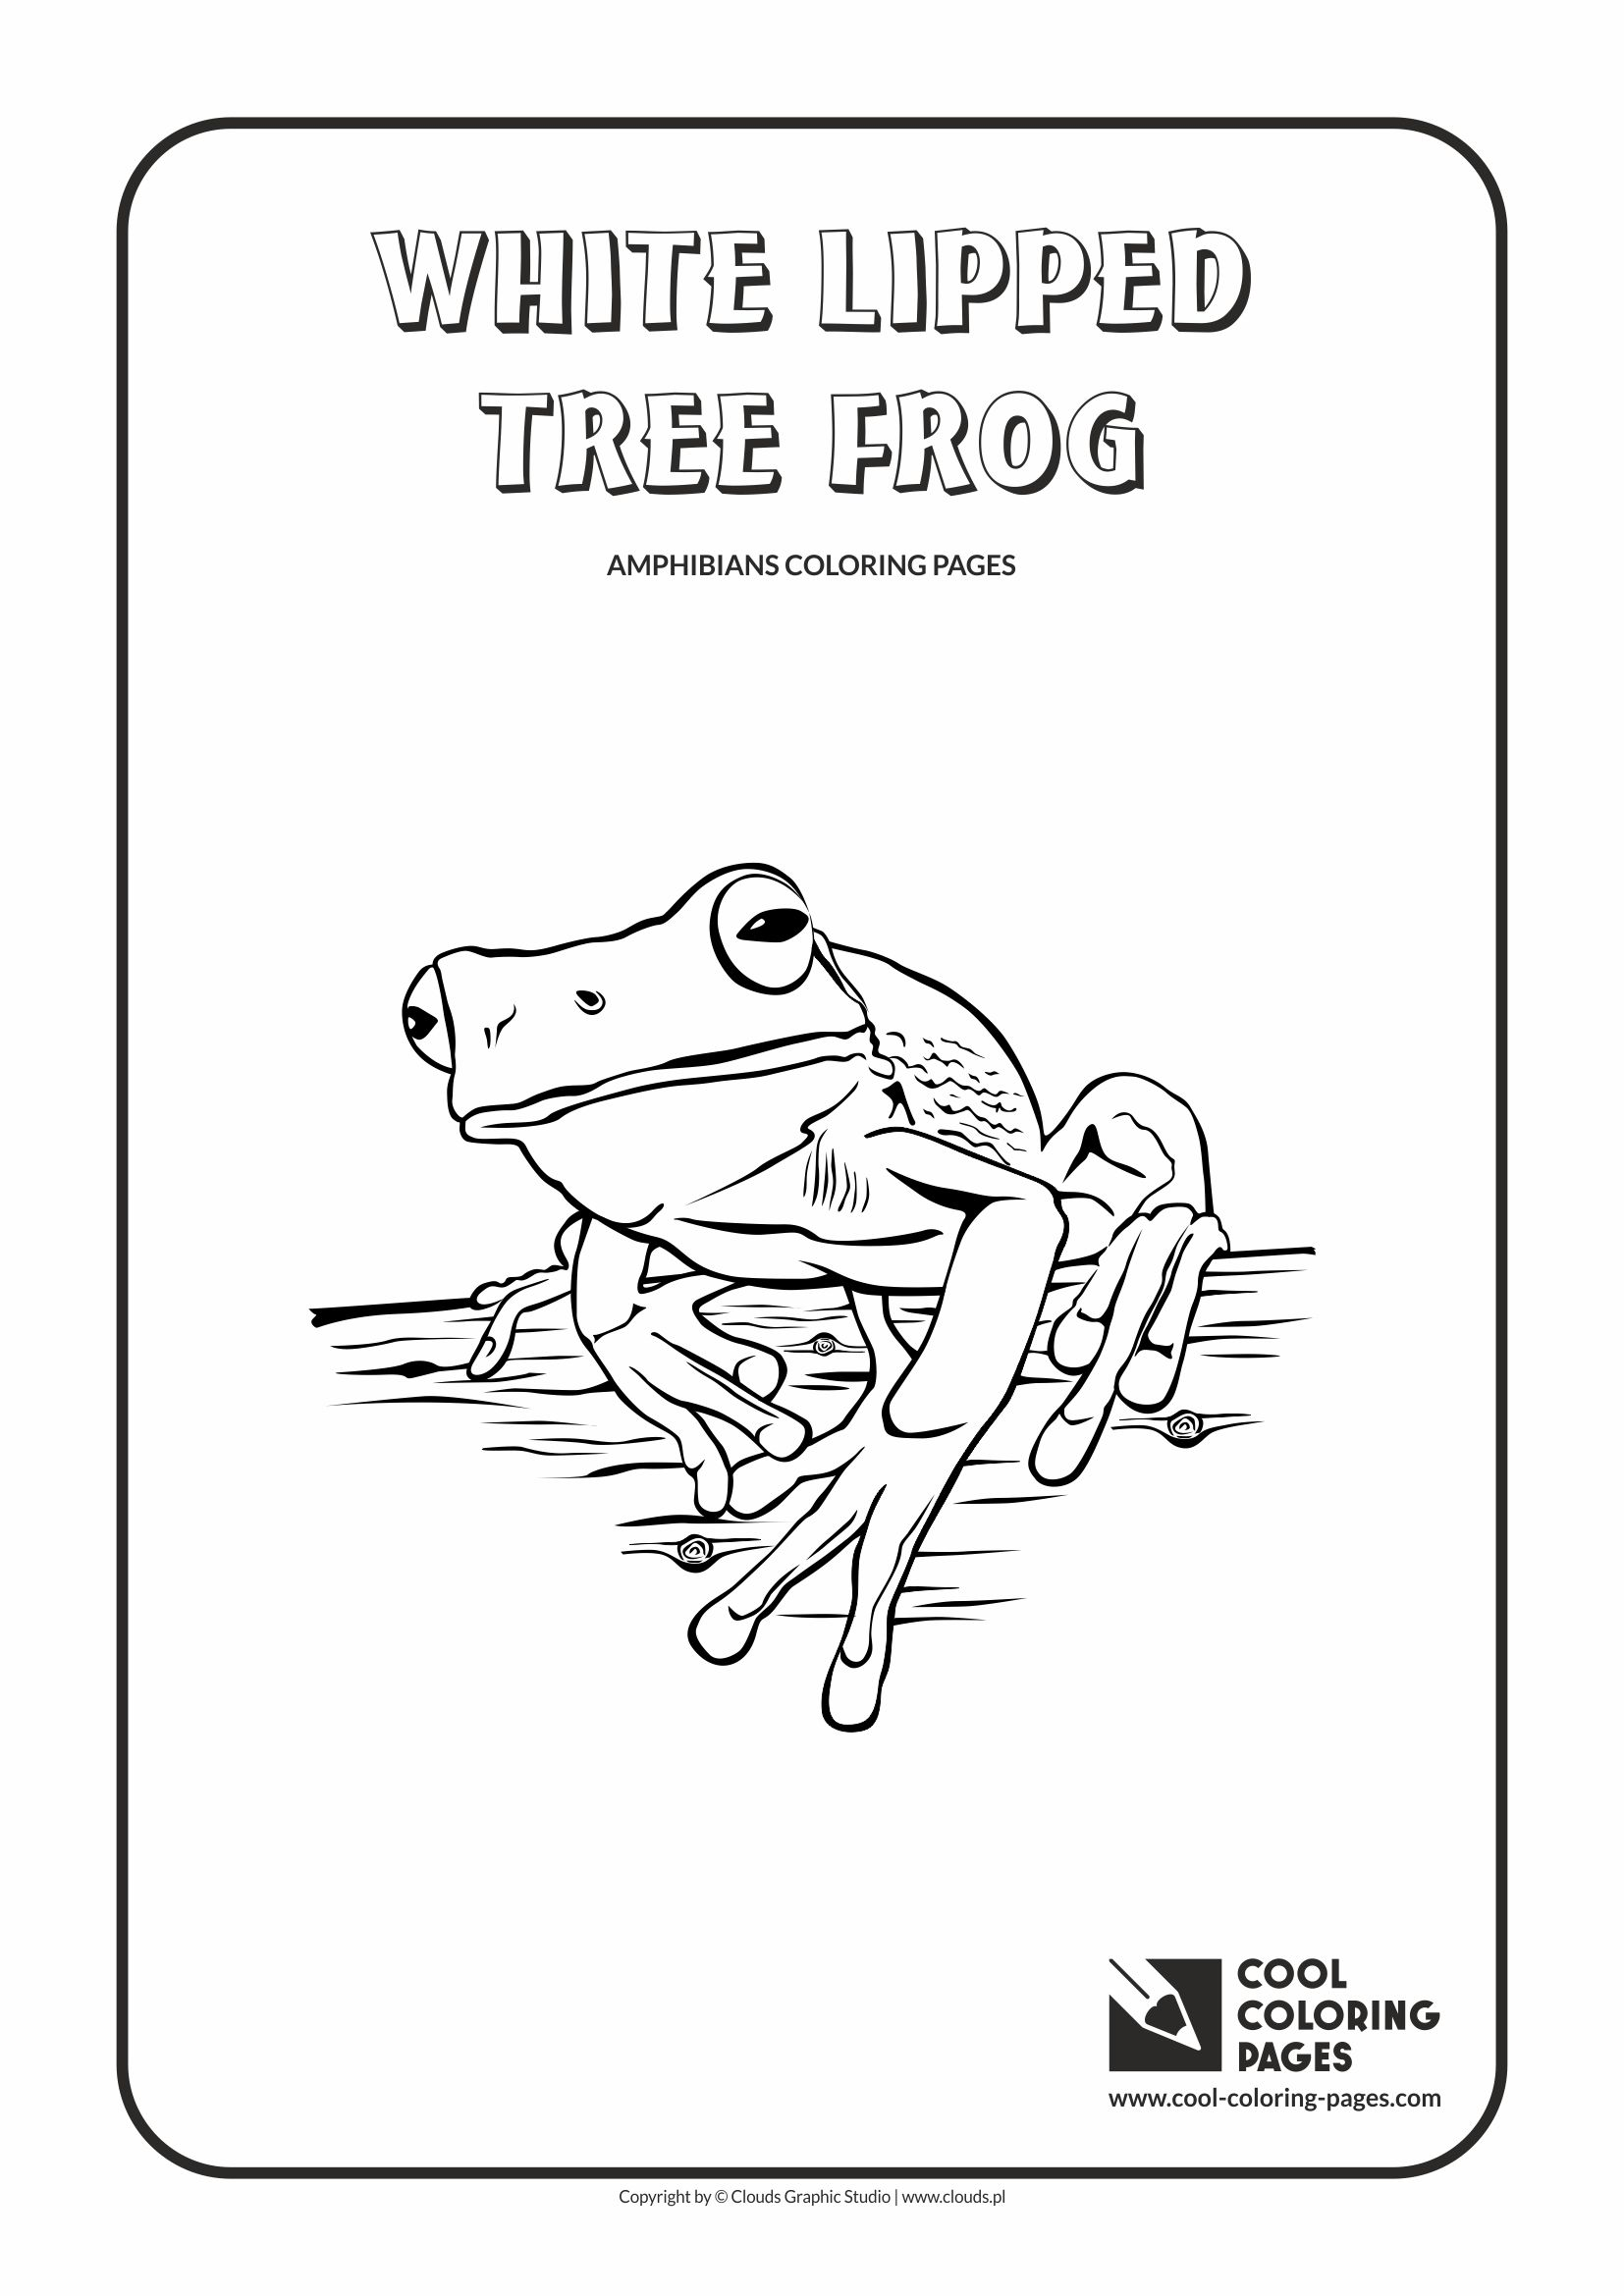 Cool Coloring Pages Amphibians And Reptiles Coloring Pages